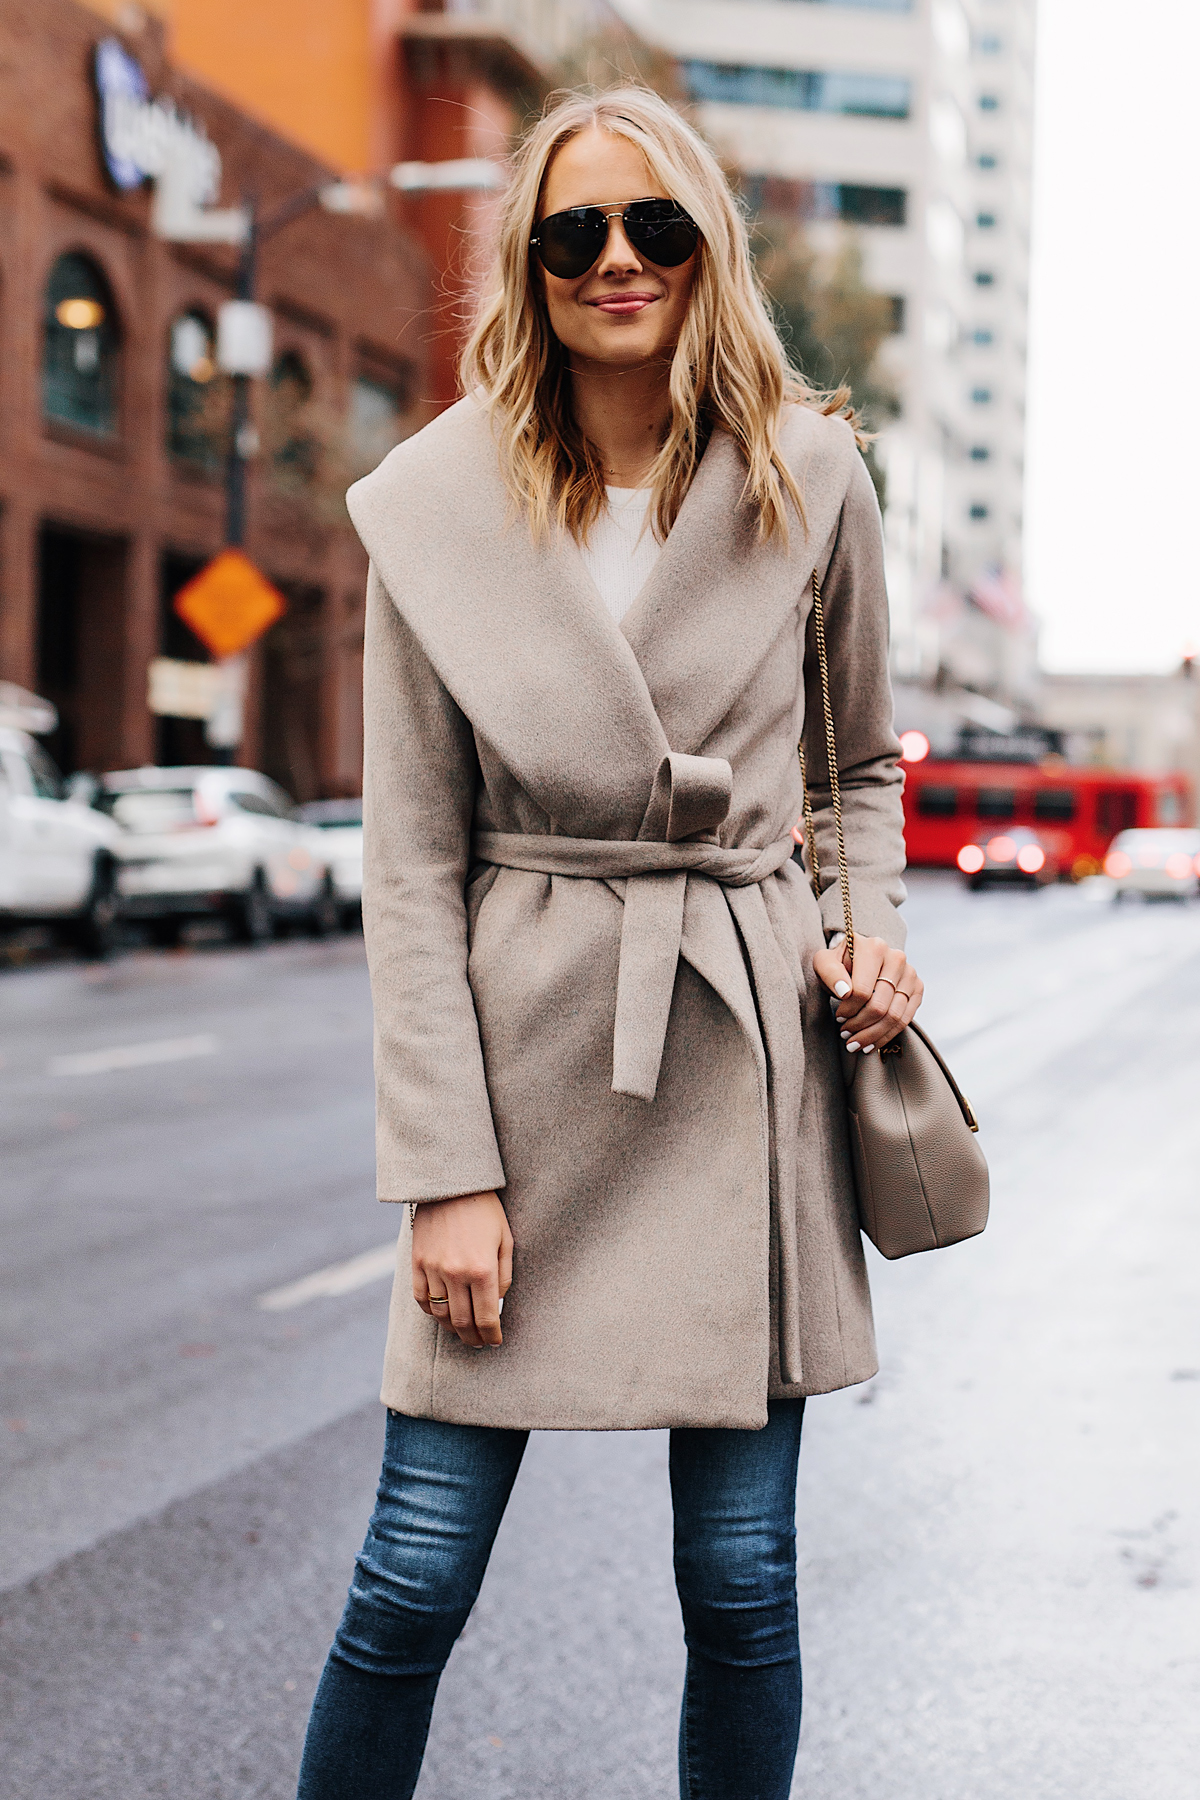 Blonde Woman Wearing Ann Taylor Beige Wrap Coat Denim Skinny Jeans Outfit Fashion Jackson San Diego Fashion Blogger Street Style